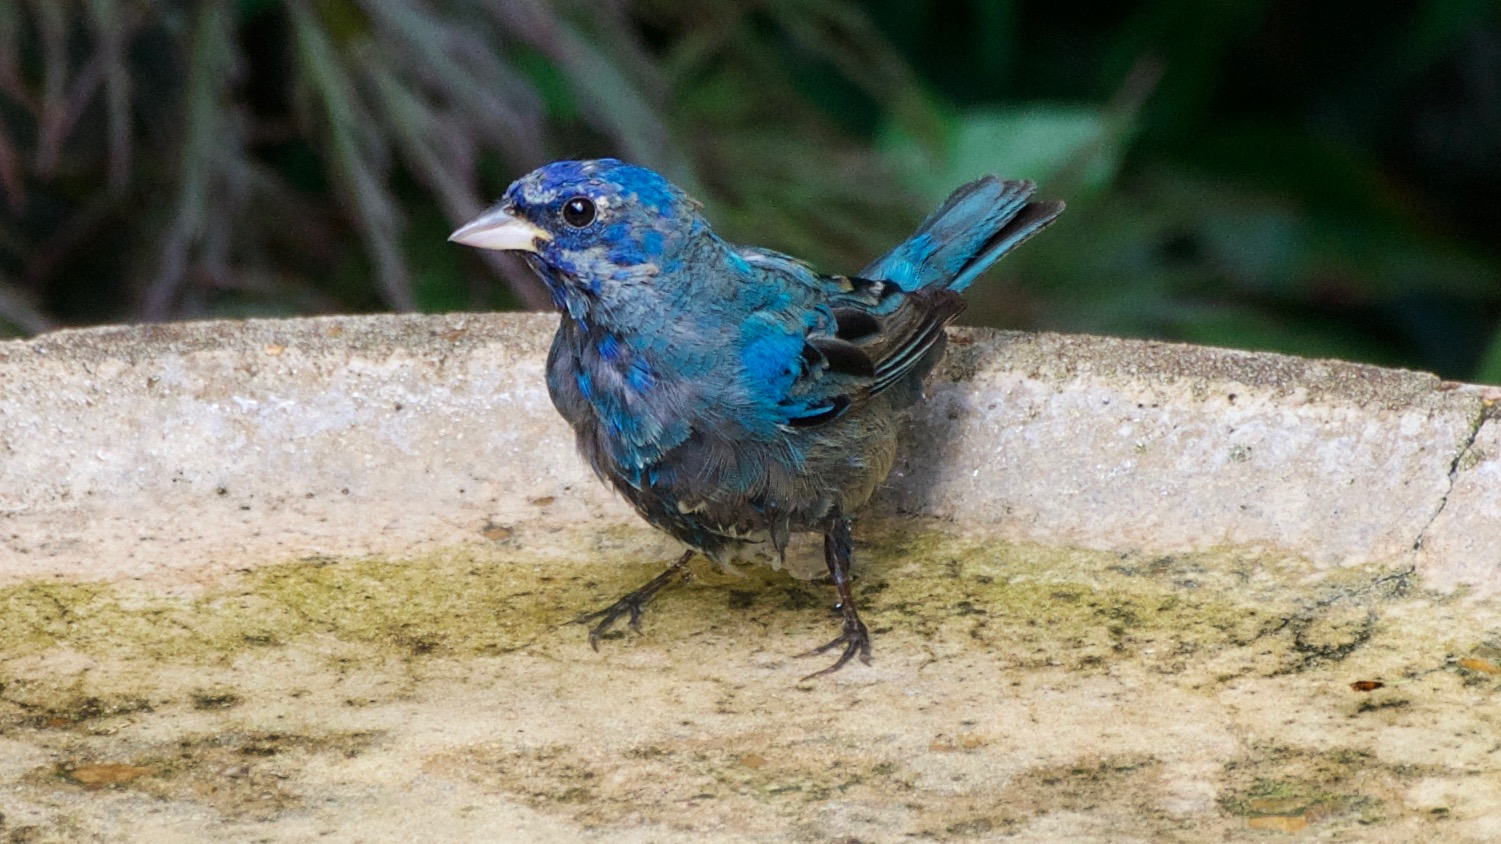 Indigo Bunting in molting process